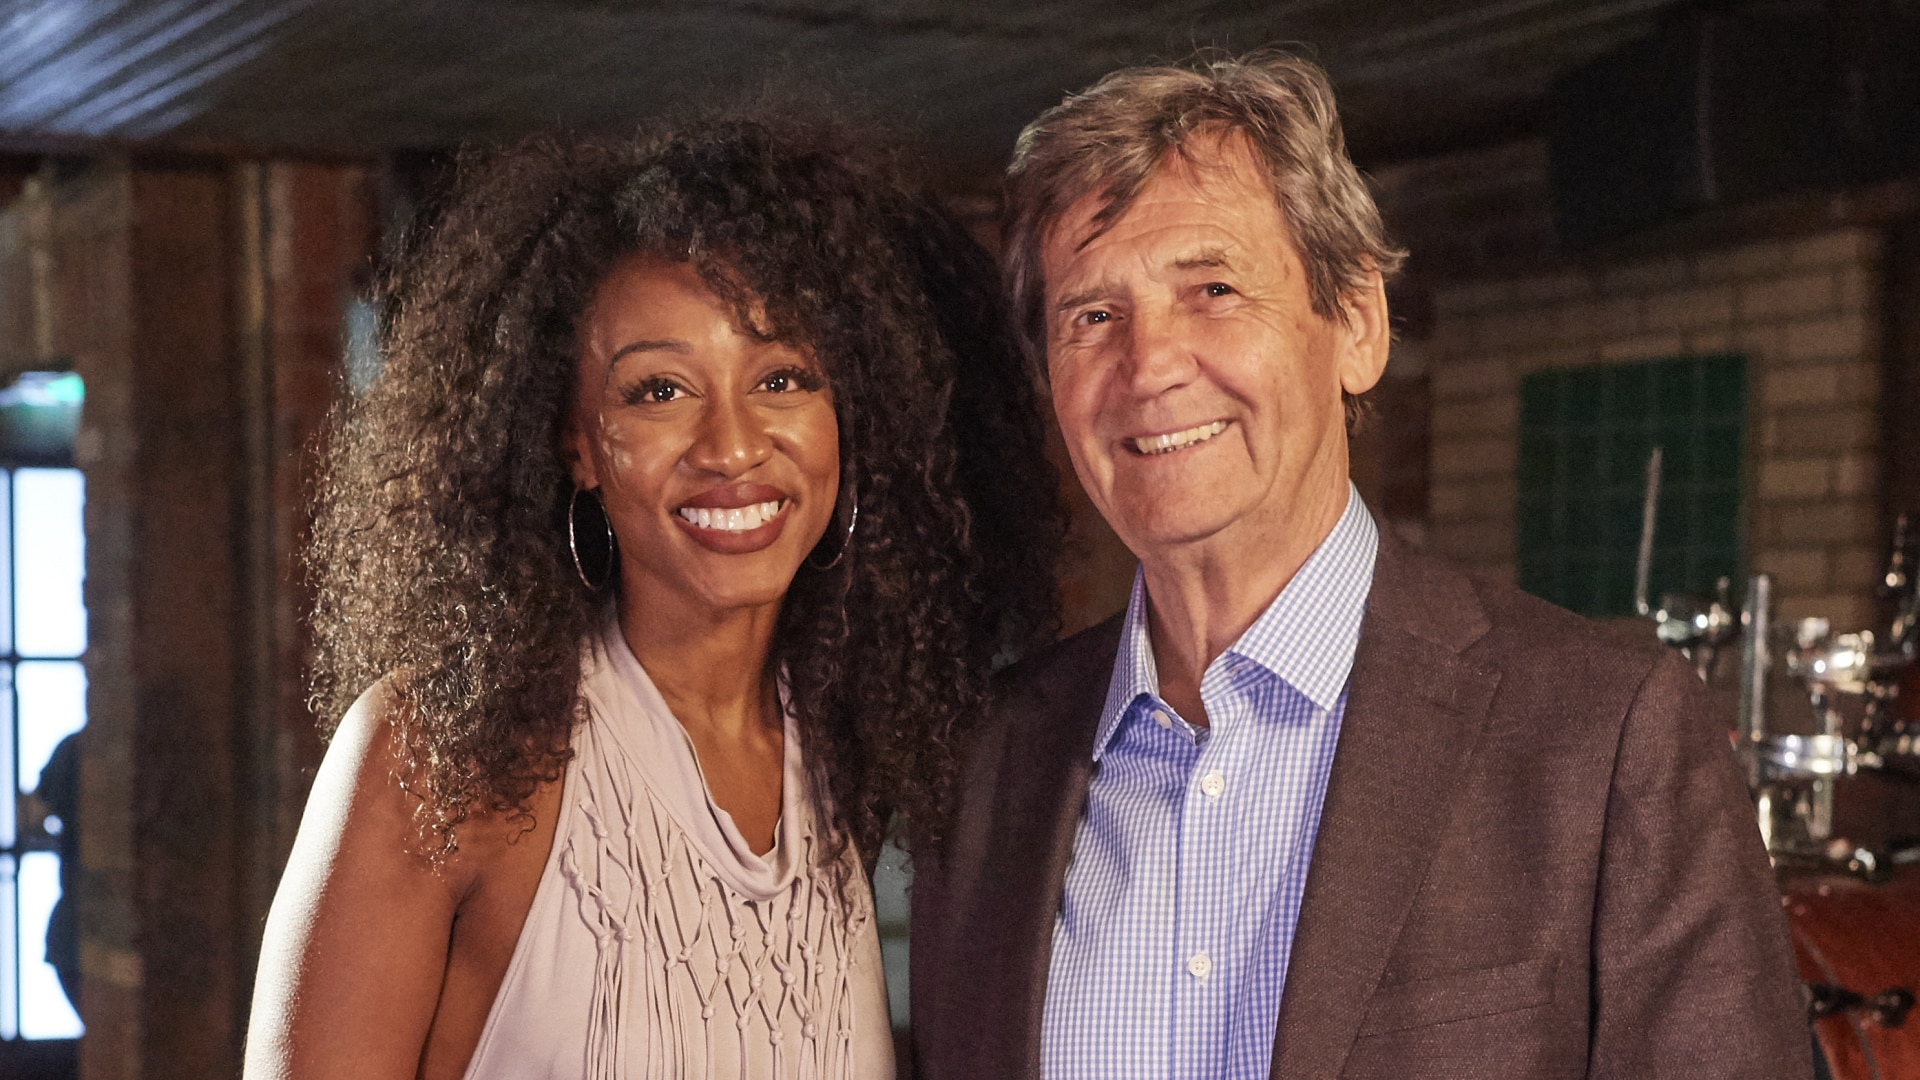 Beverley Knight: The South Bank Show